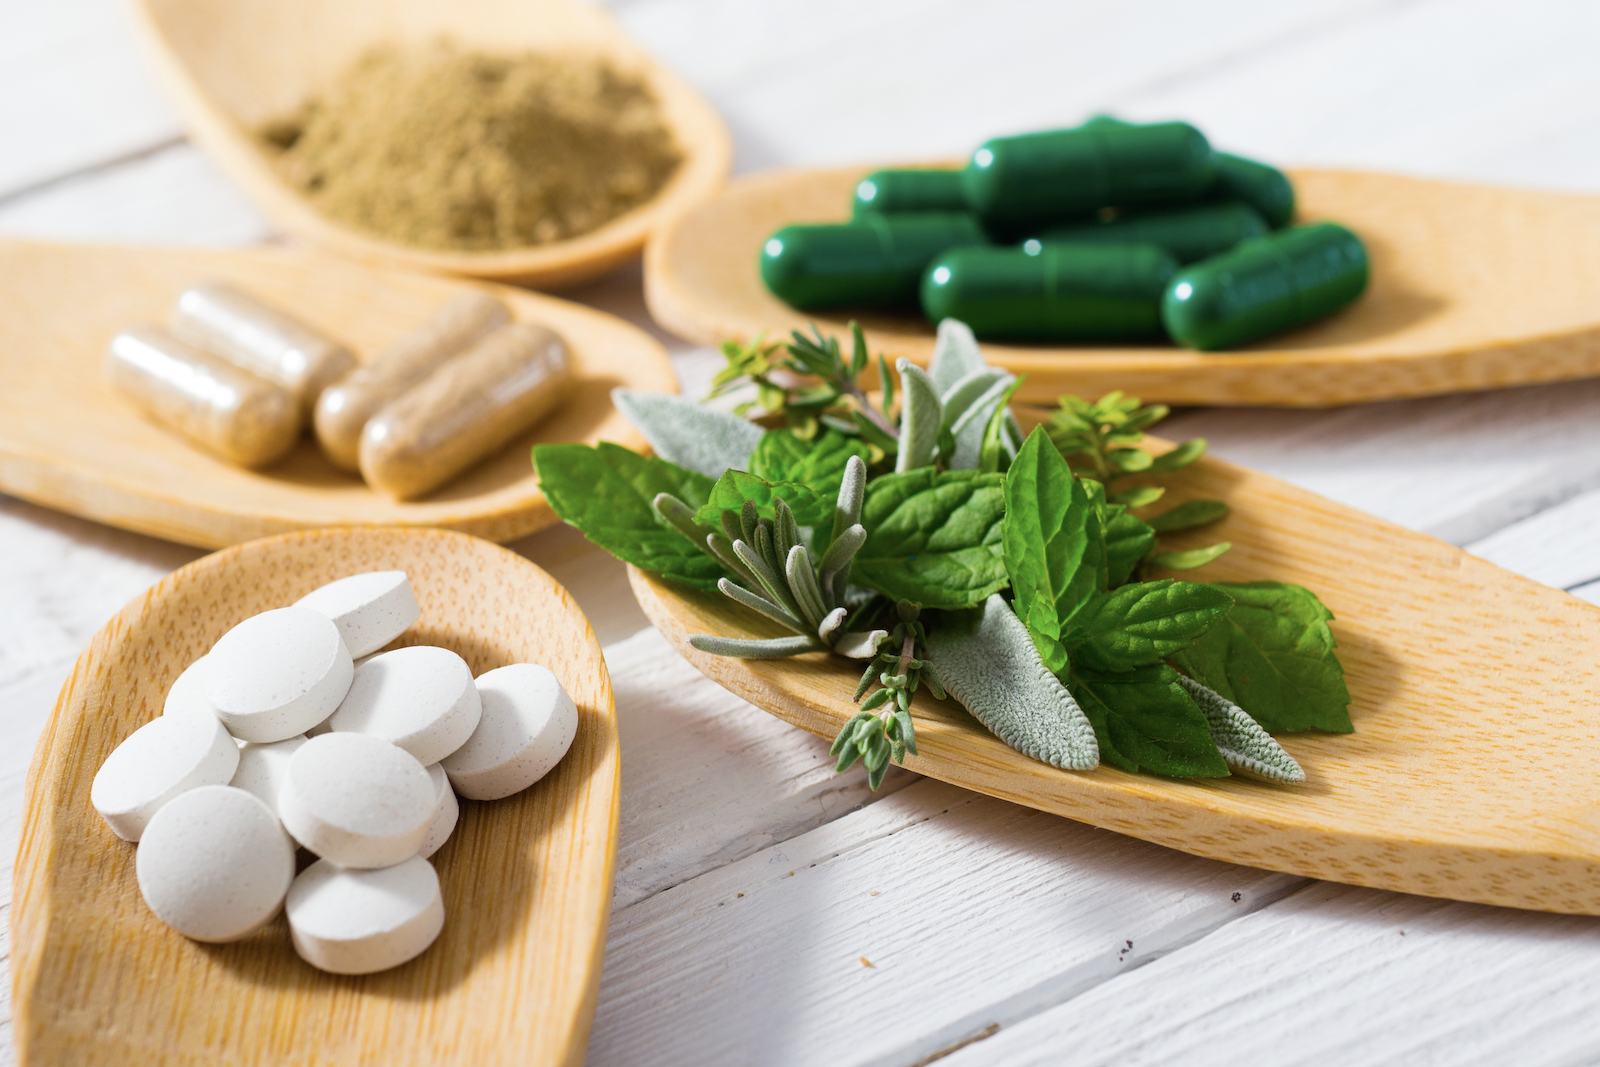 Herbs and herbal medicine on wooden spoons